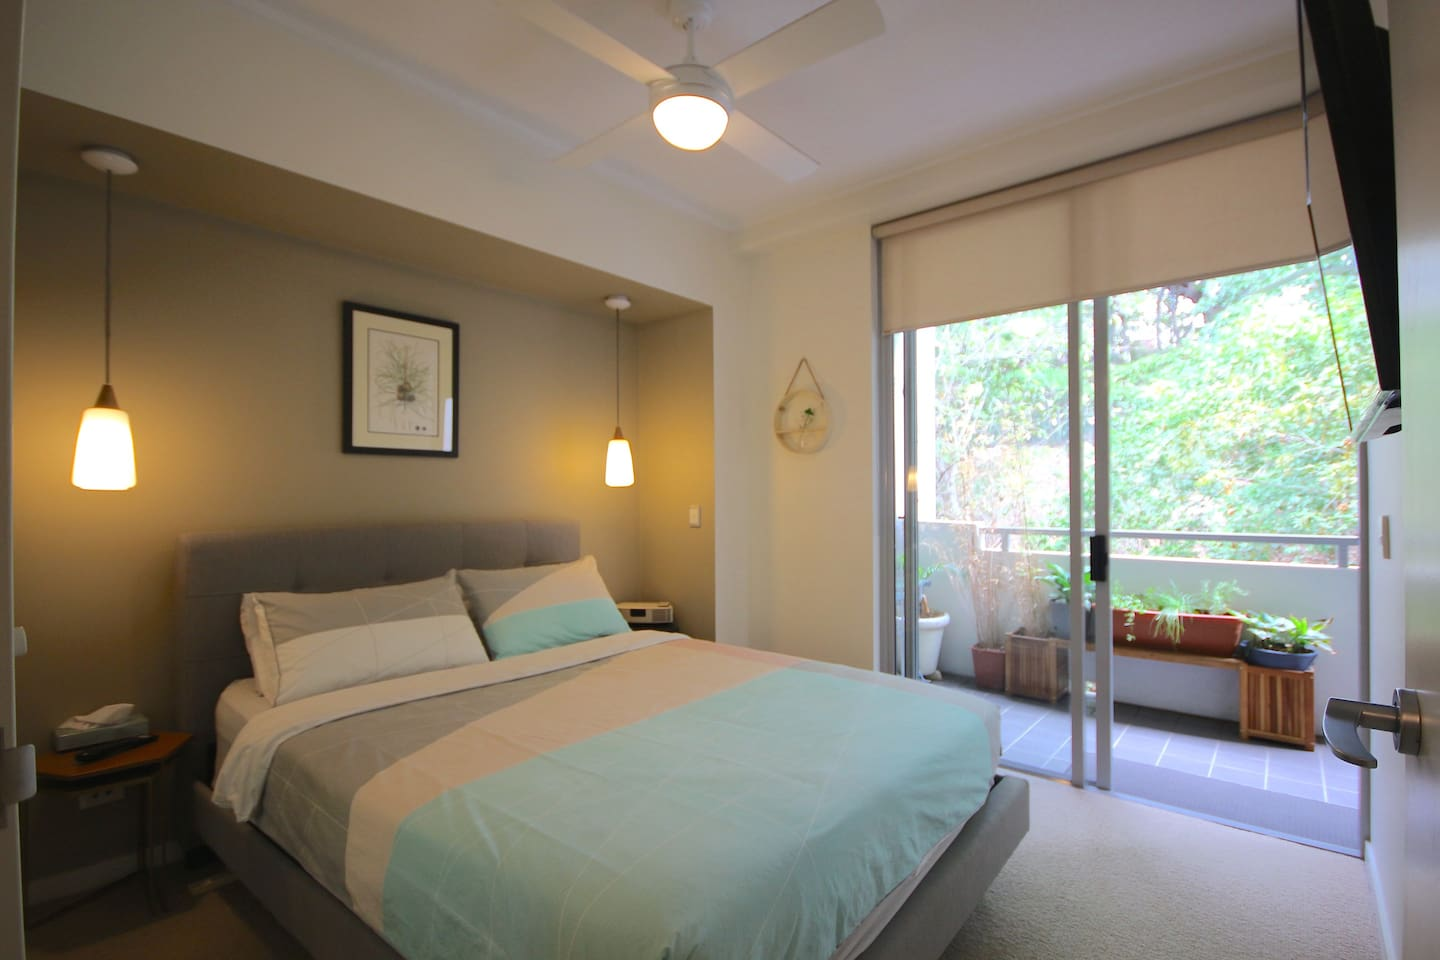 Your room is bright and breezy with ceiling fan and adjoining balcony